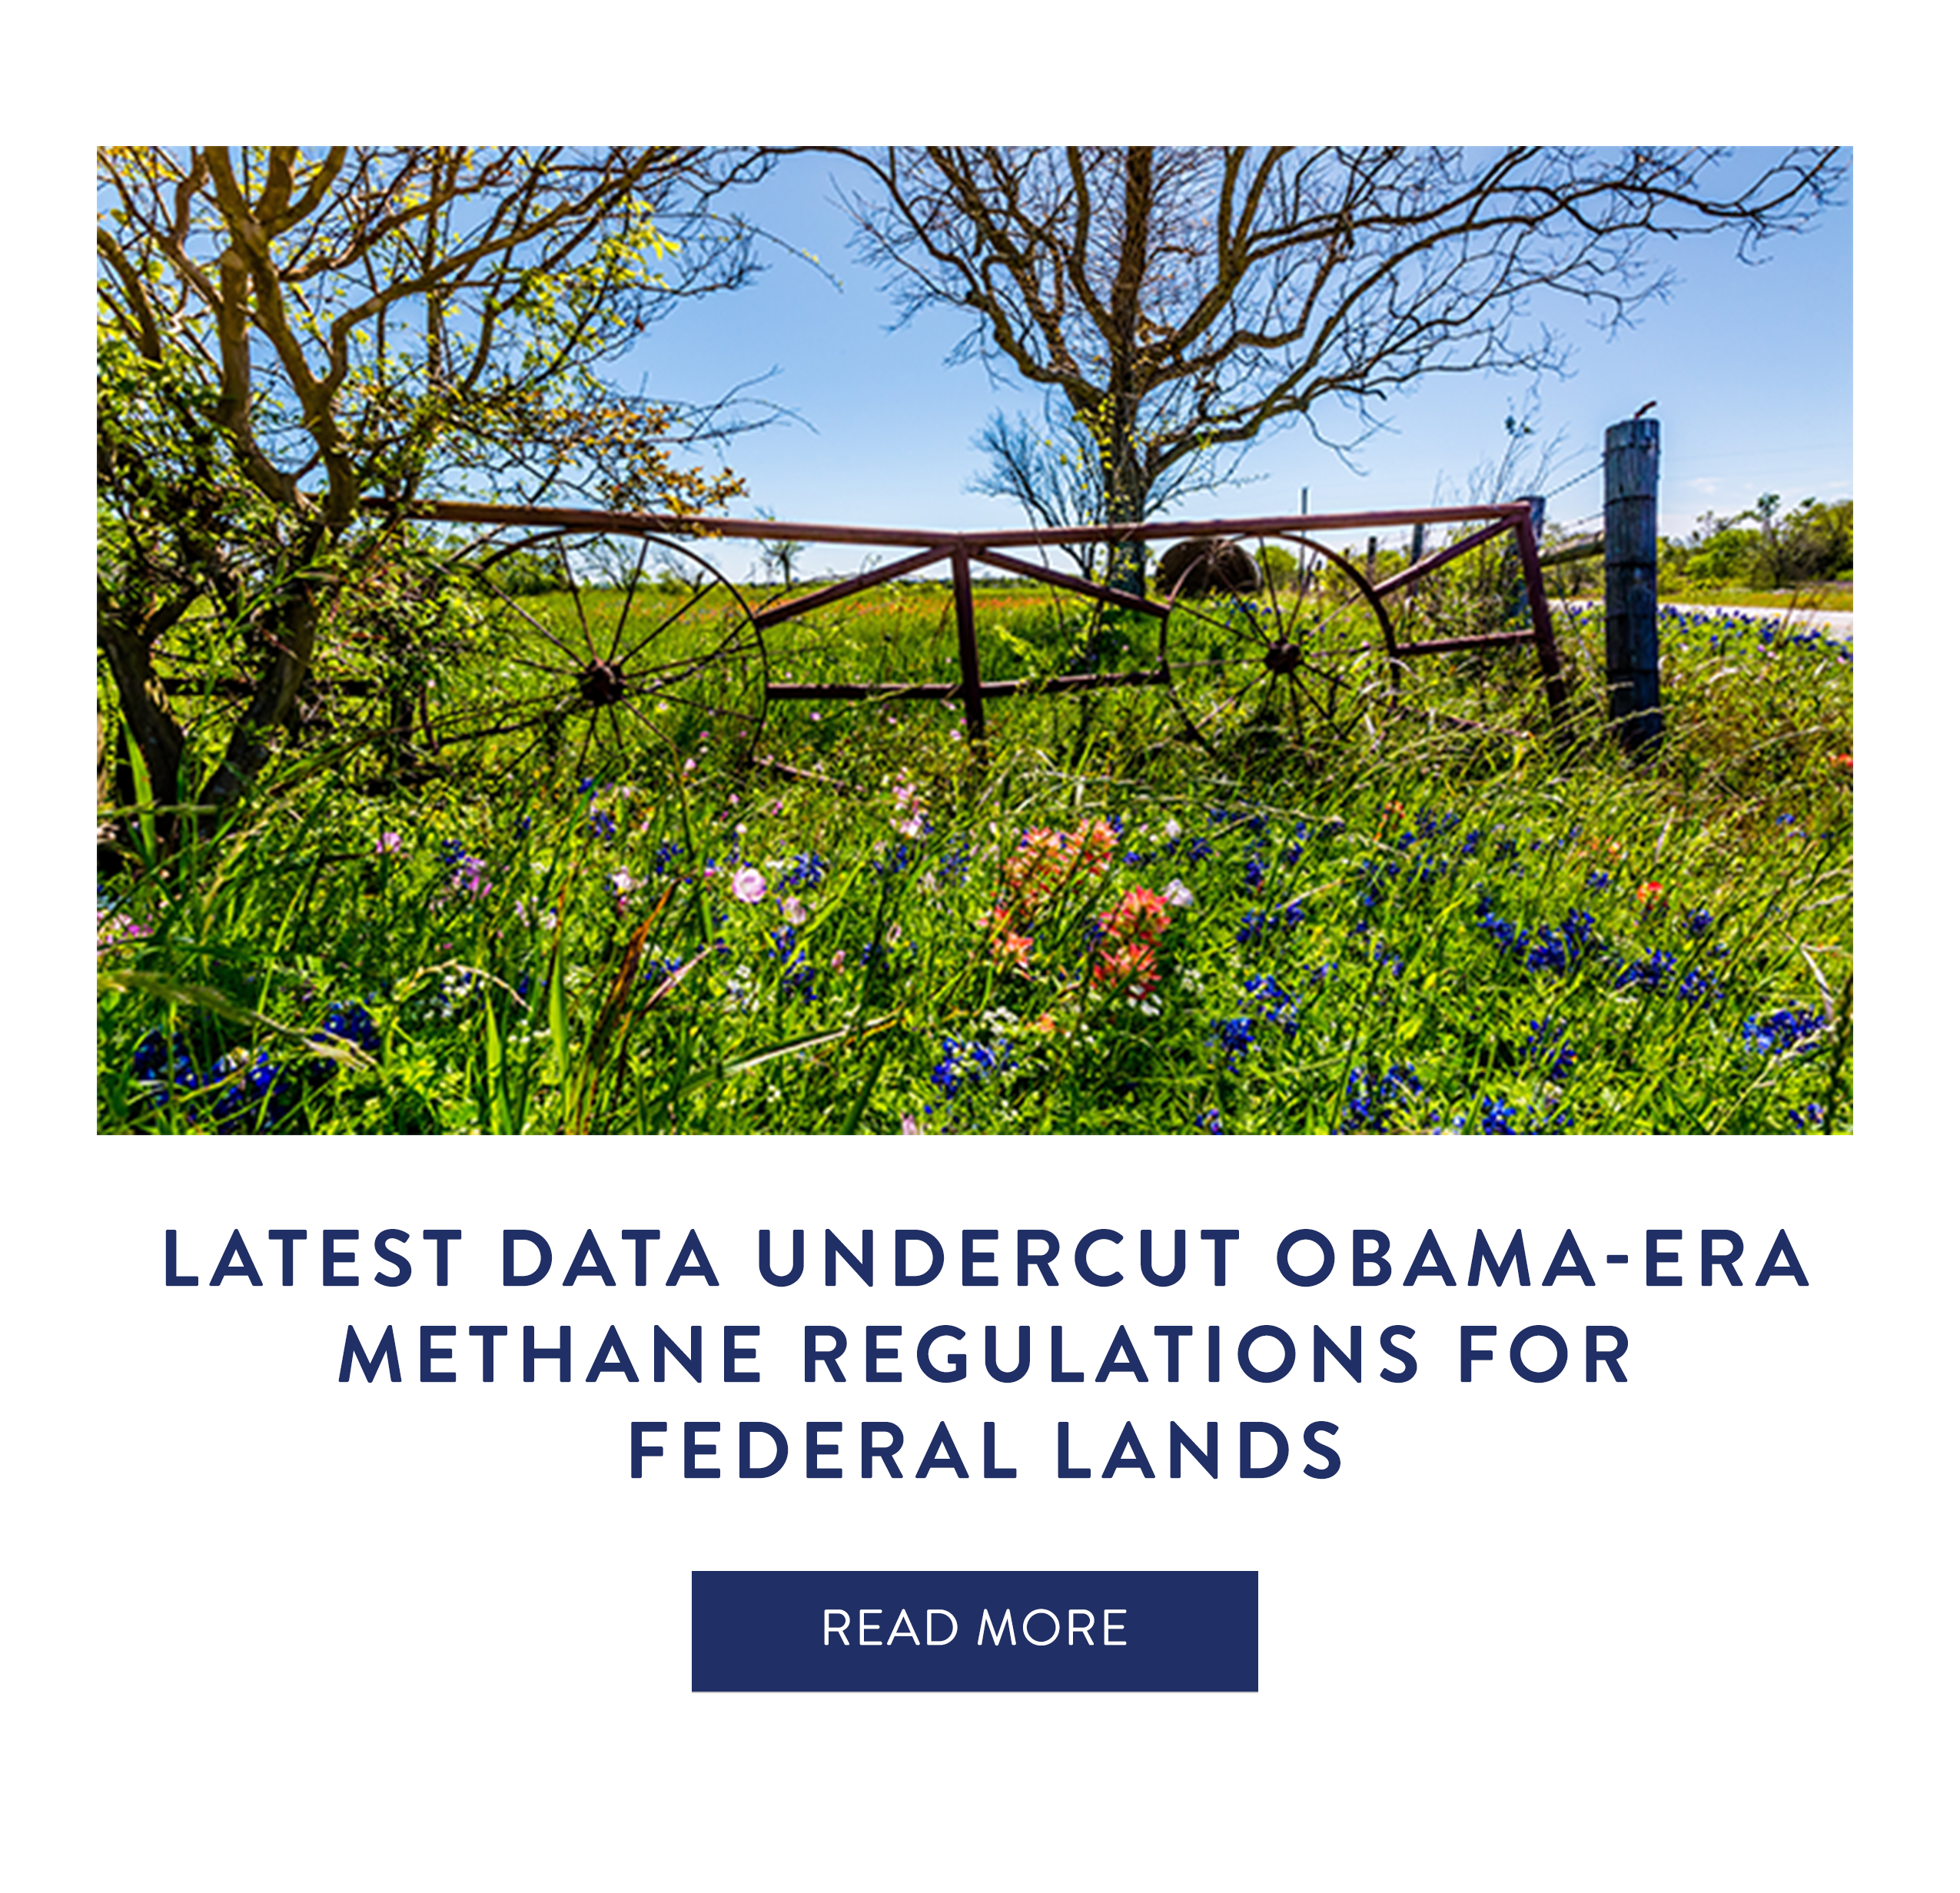 Latest Data Undercut Obama-Era Methane Regulations for Federal Lands